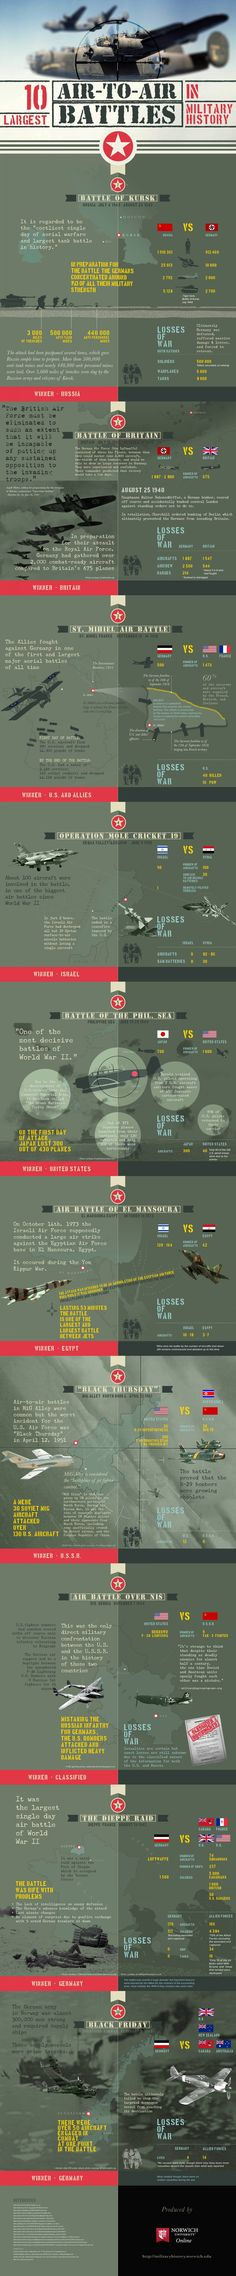 Ten Largest Air to Air Battles in Military History 1600W EditedVersion